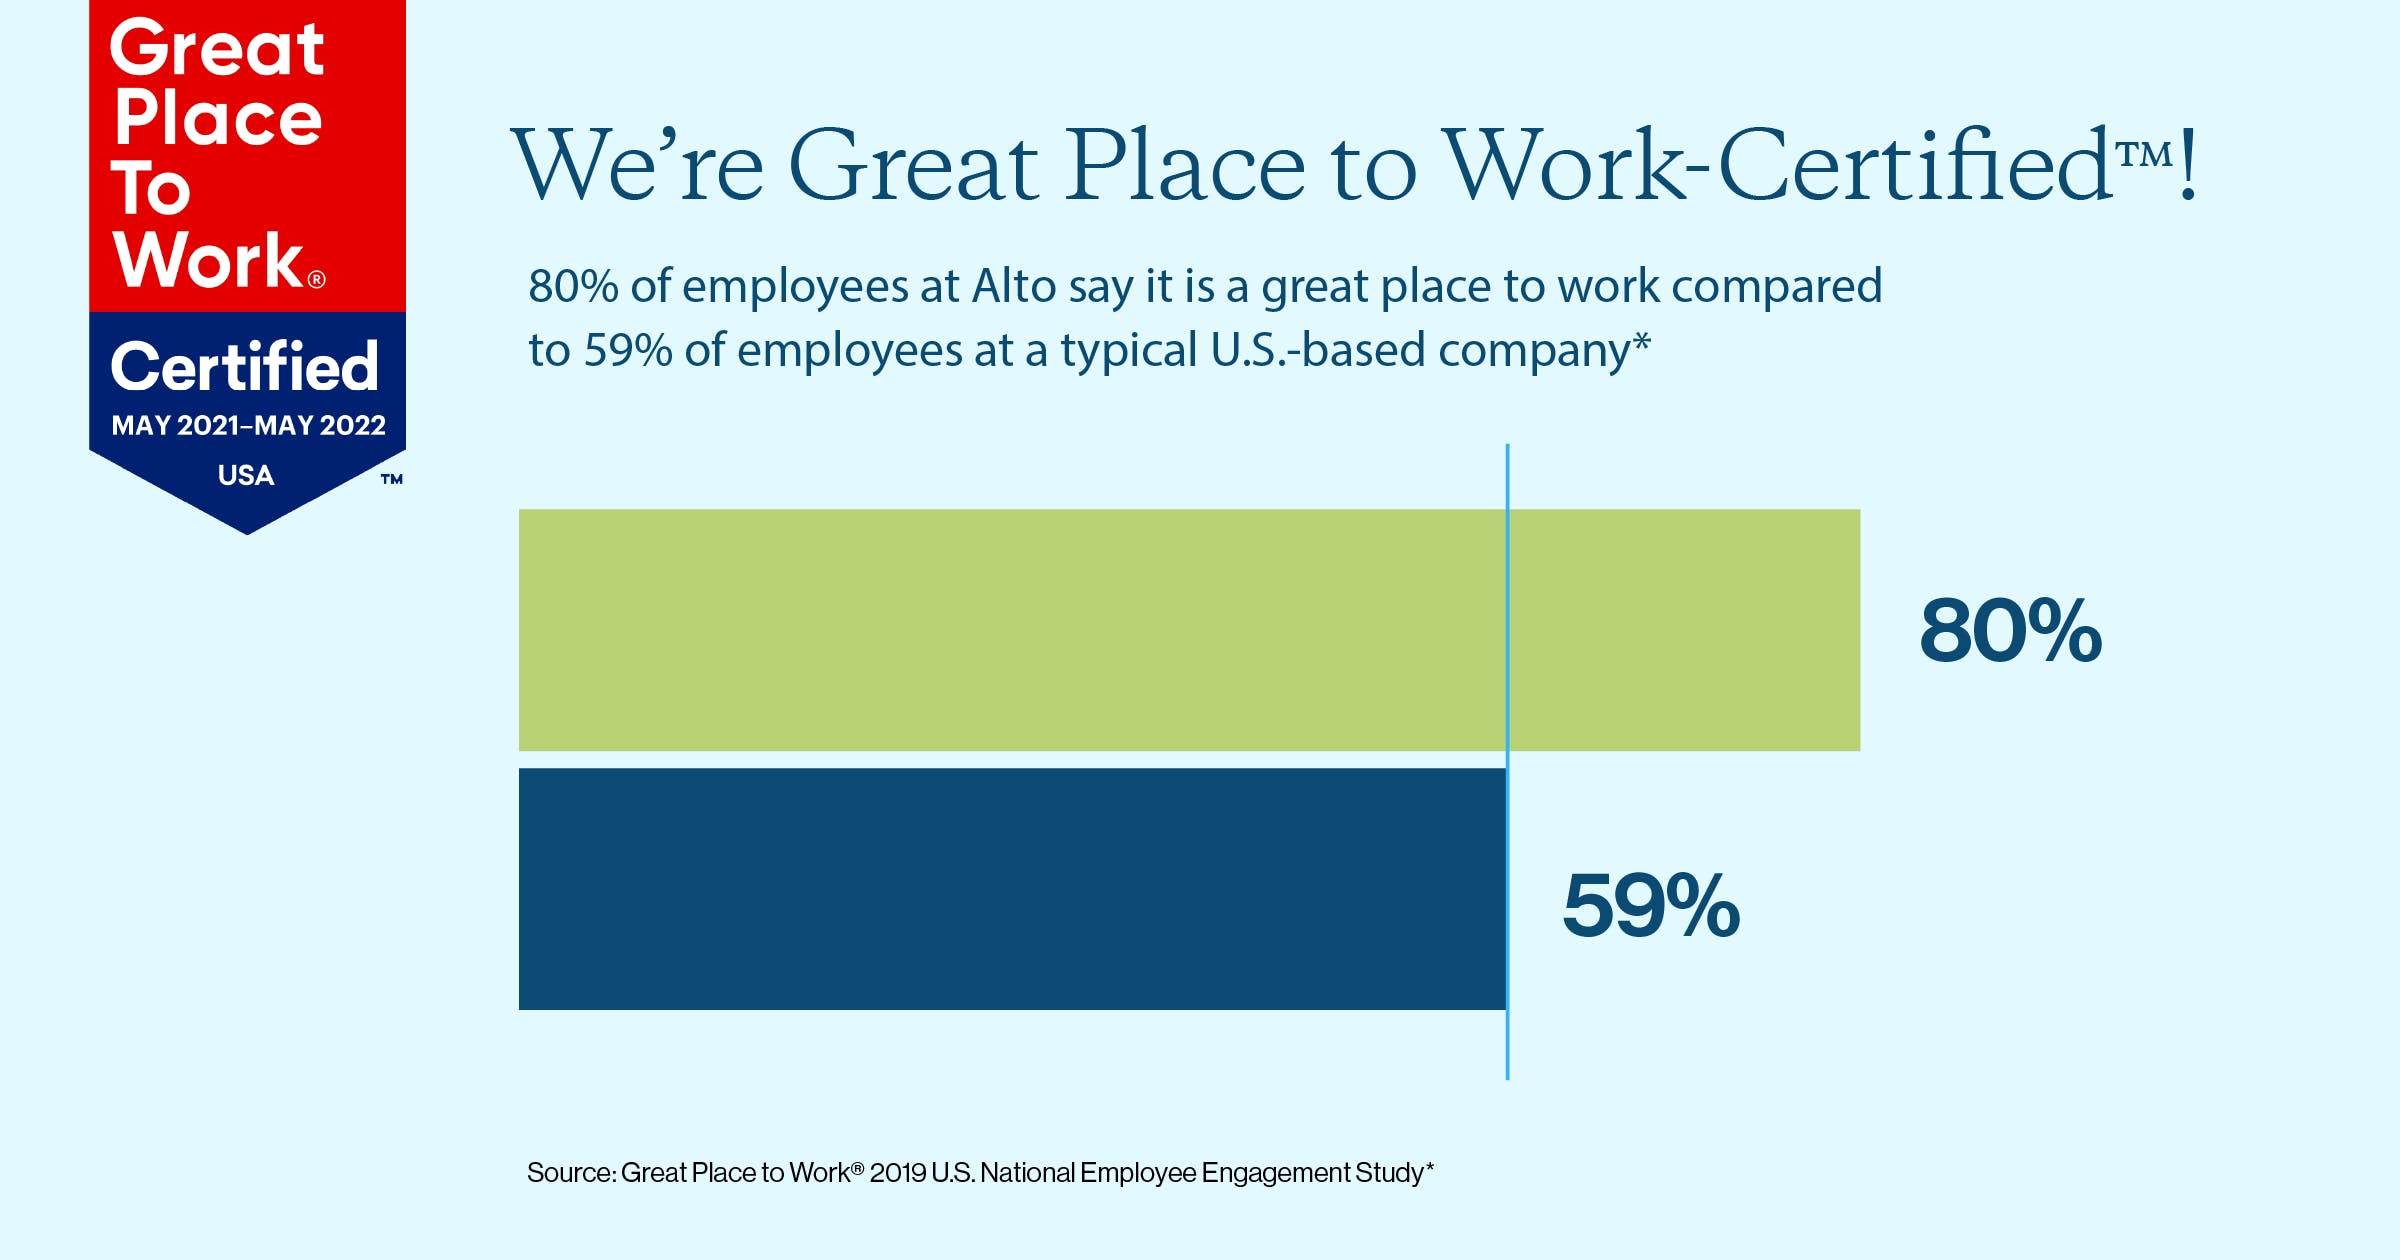 80% of employees at Alto say it's a great place to work